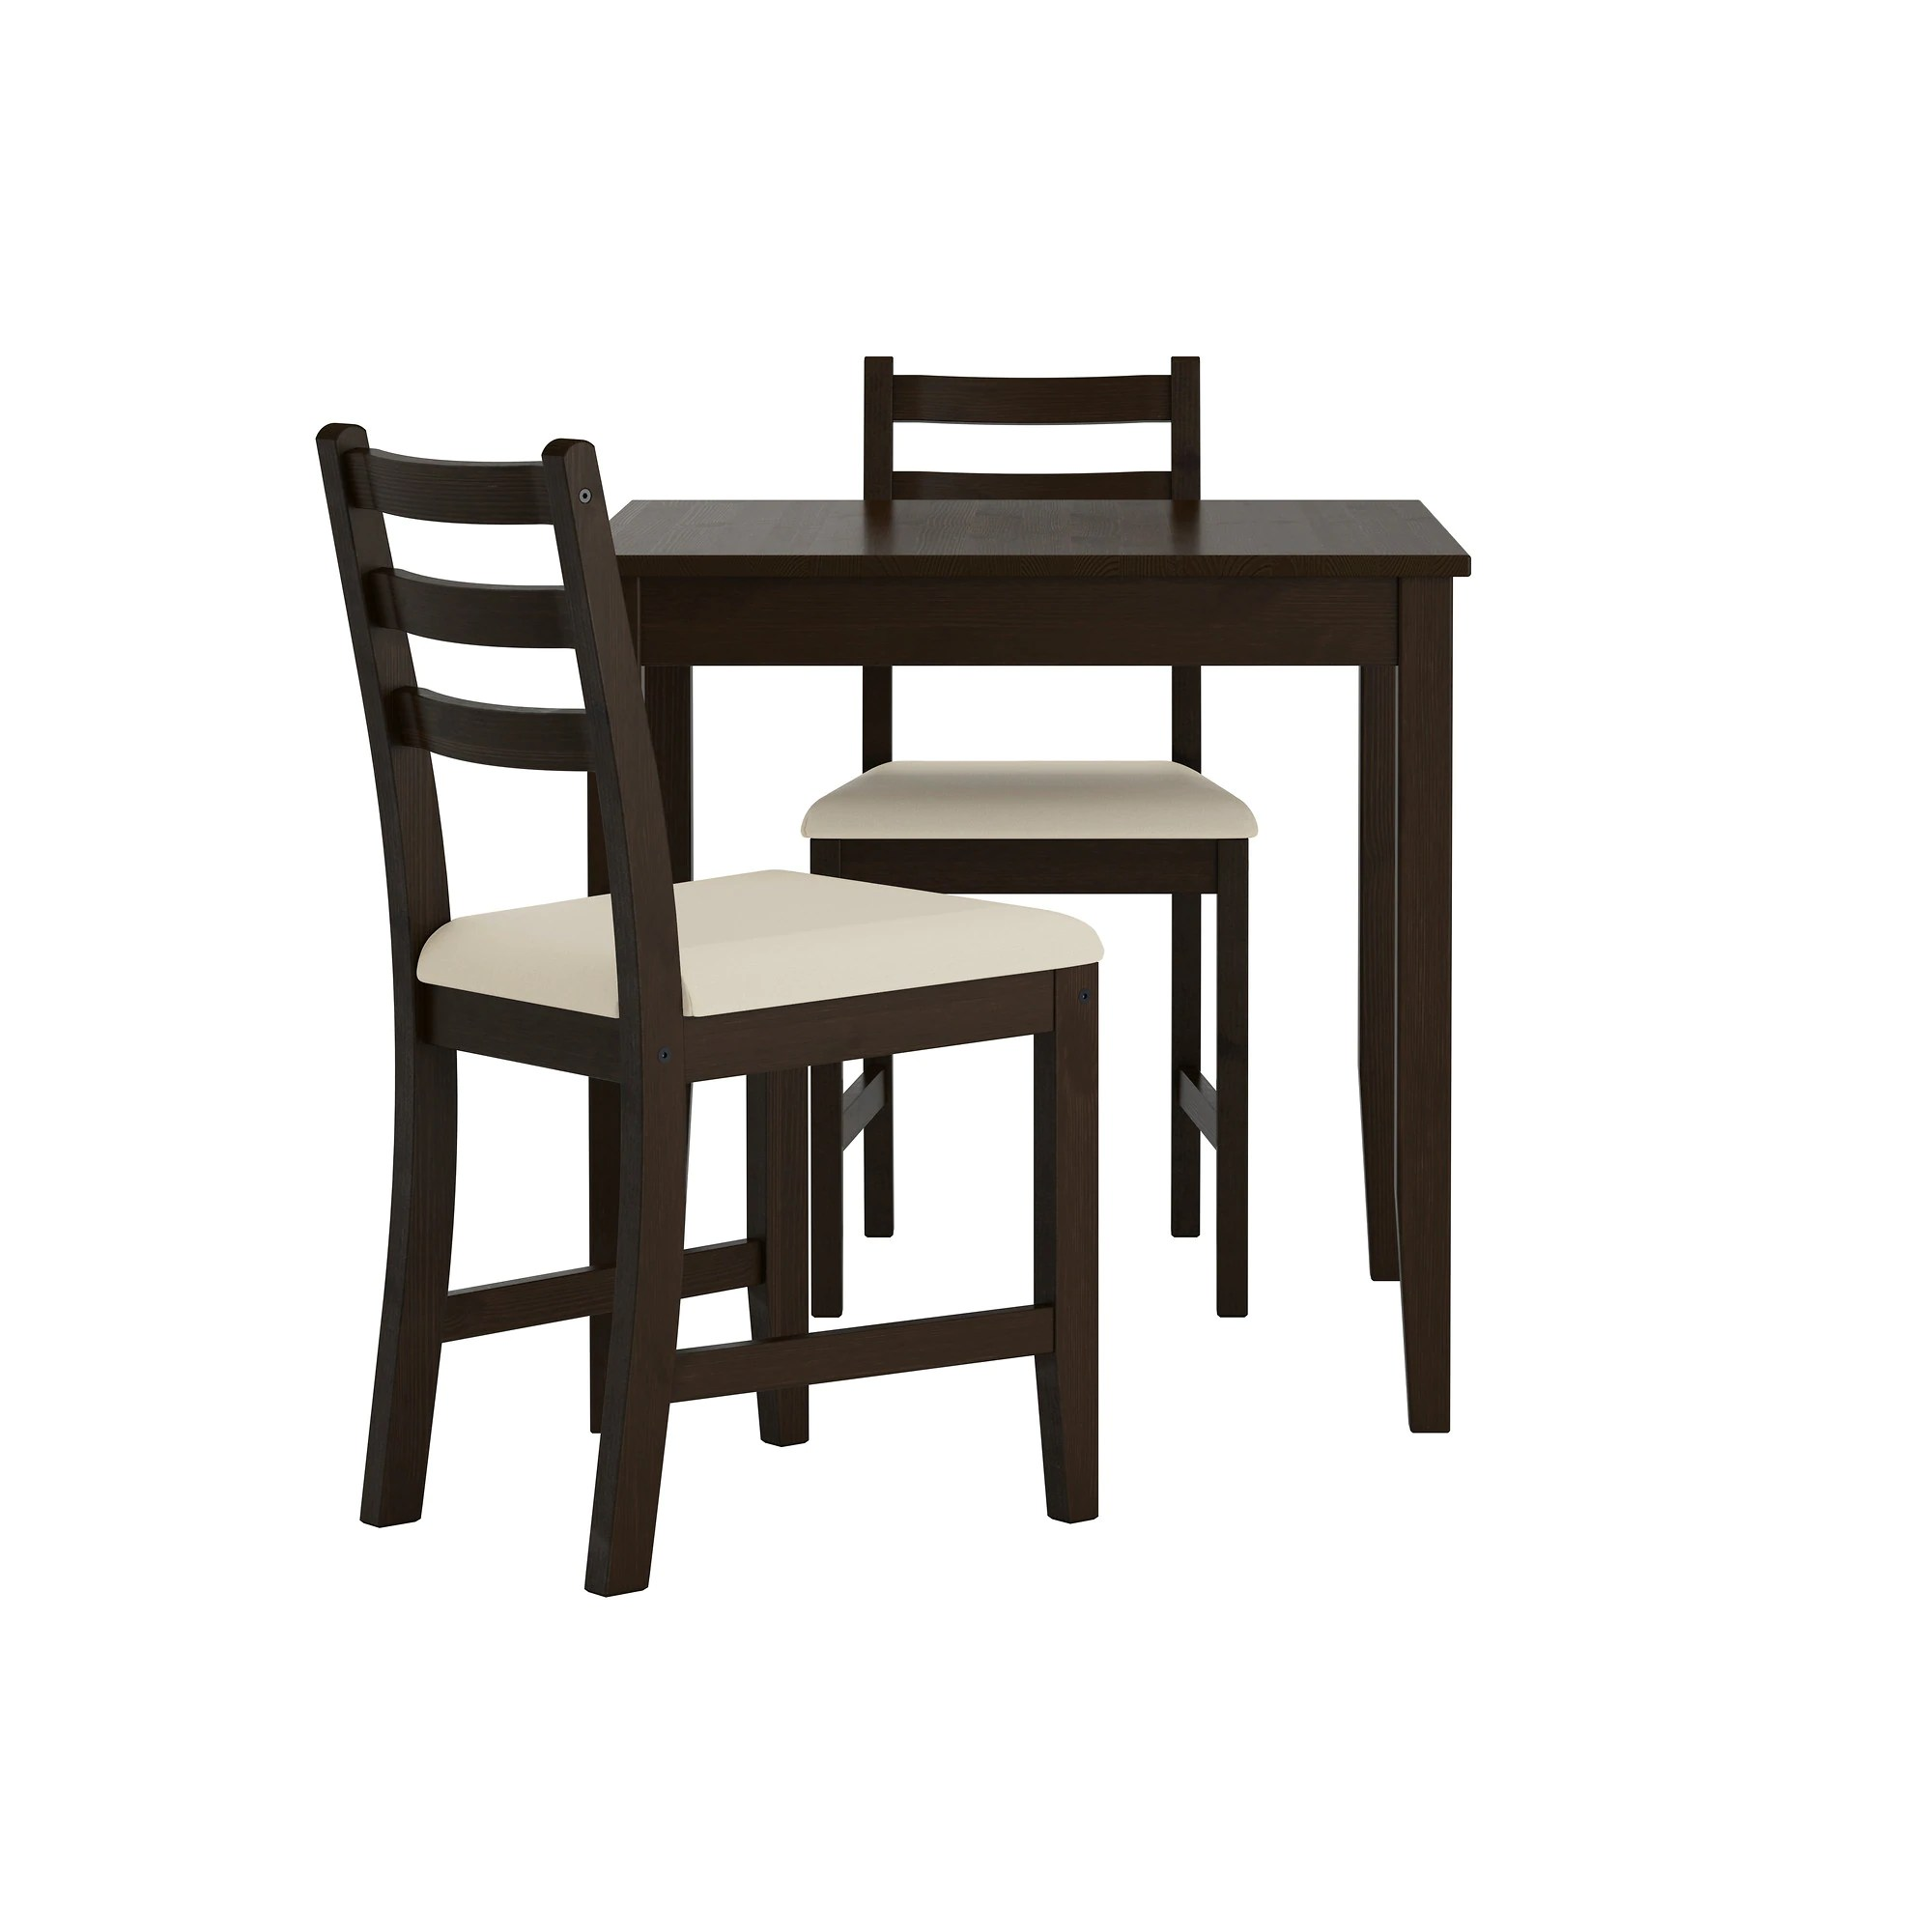 Table With 2 Chairs Lerhamn Table And 2 Chairs Black Brown Vittaryd Beige